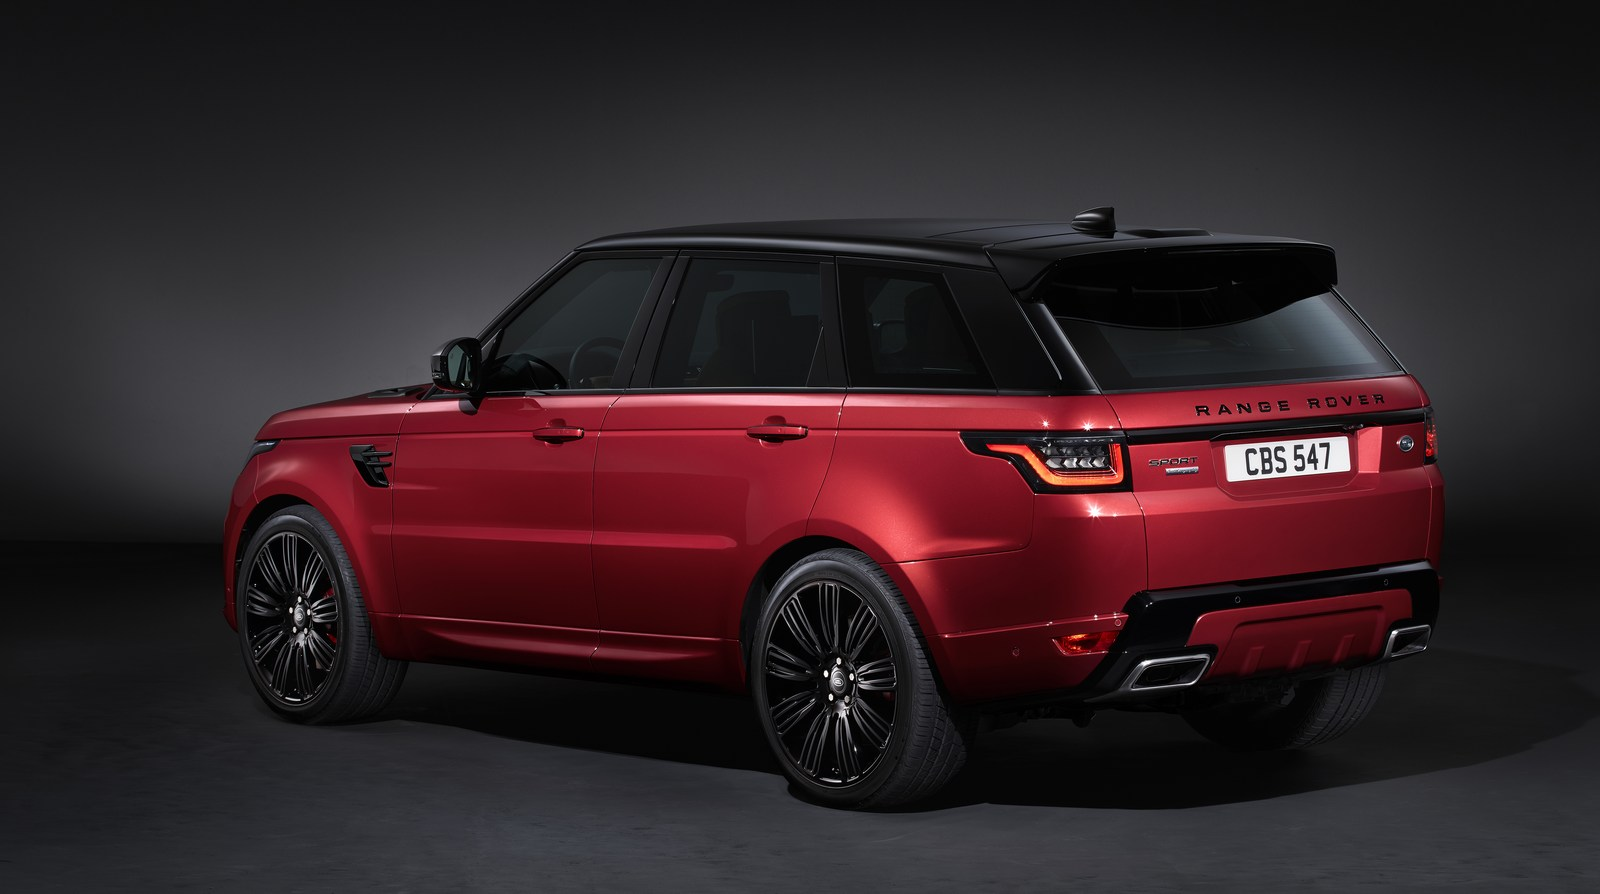 2018 range rover sport facelift debuts with 2 0 liter plug in hybrid version autoevolution. Black Bedroom Furniture Sets. Home Design Ideas